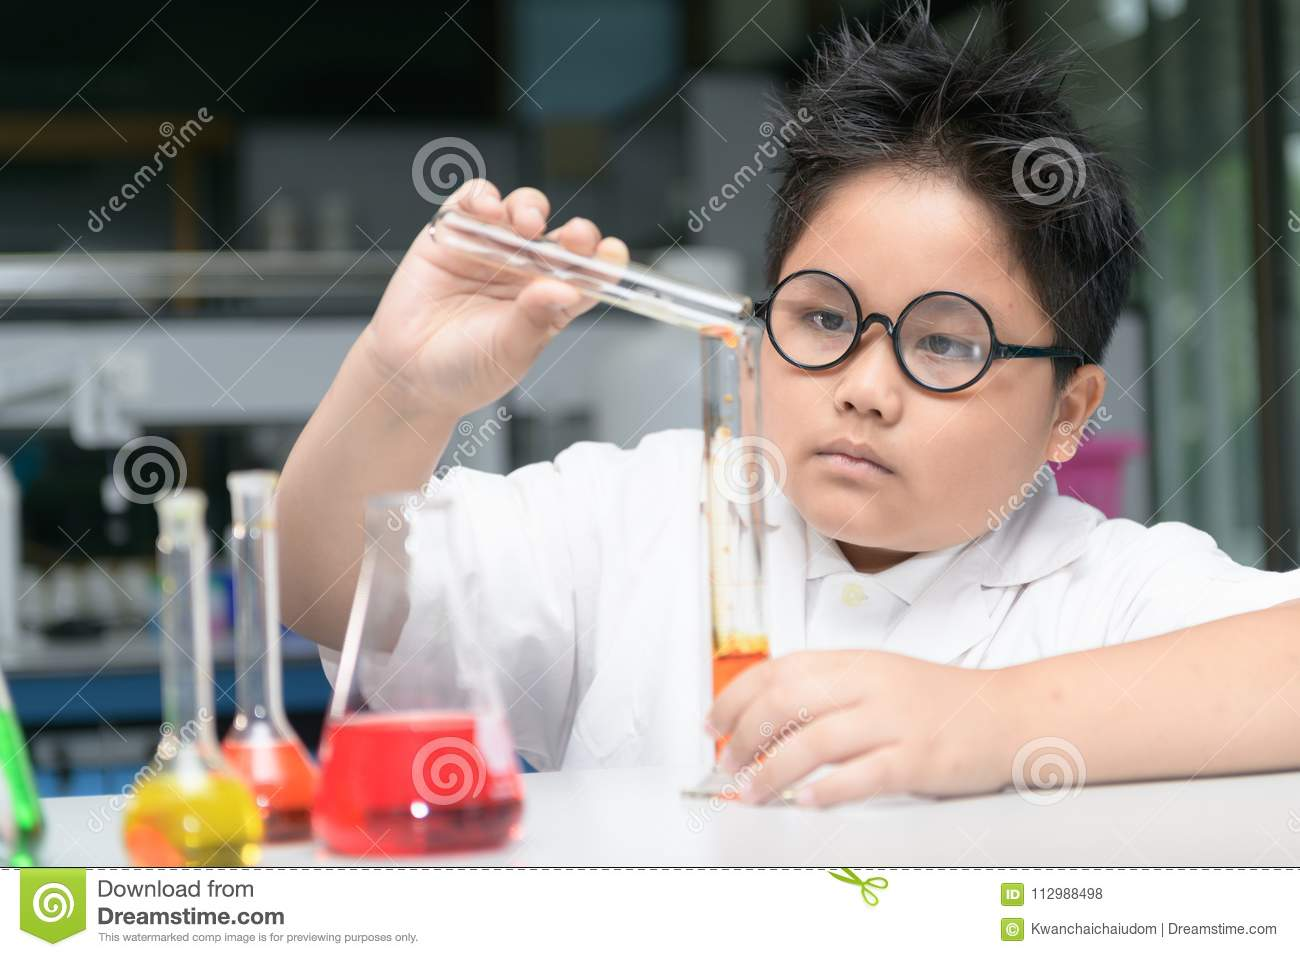 Cute boy making experiment with test tube